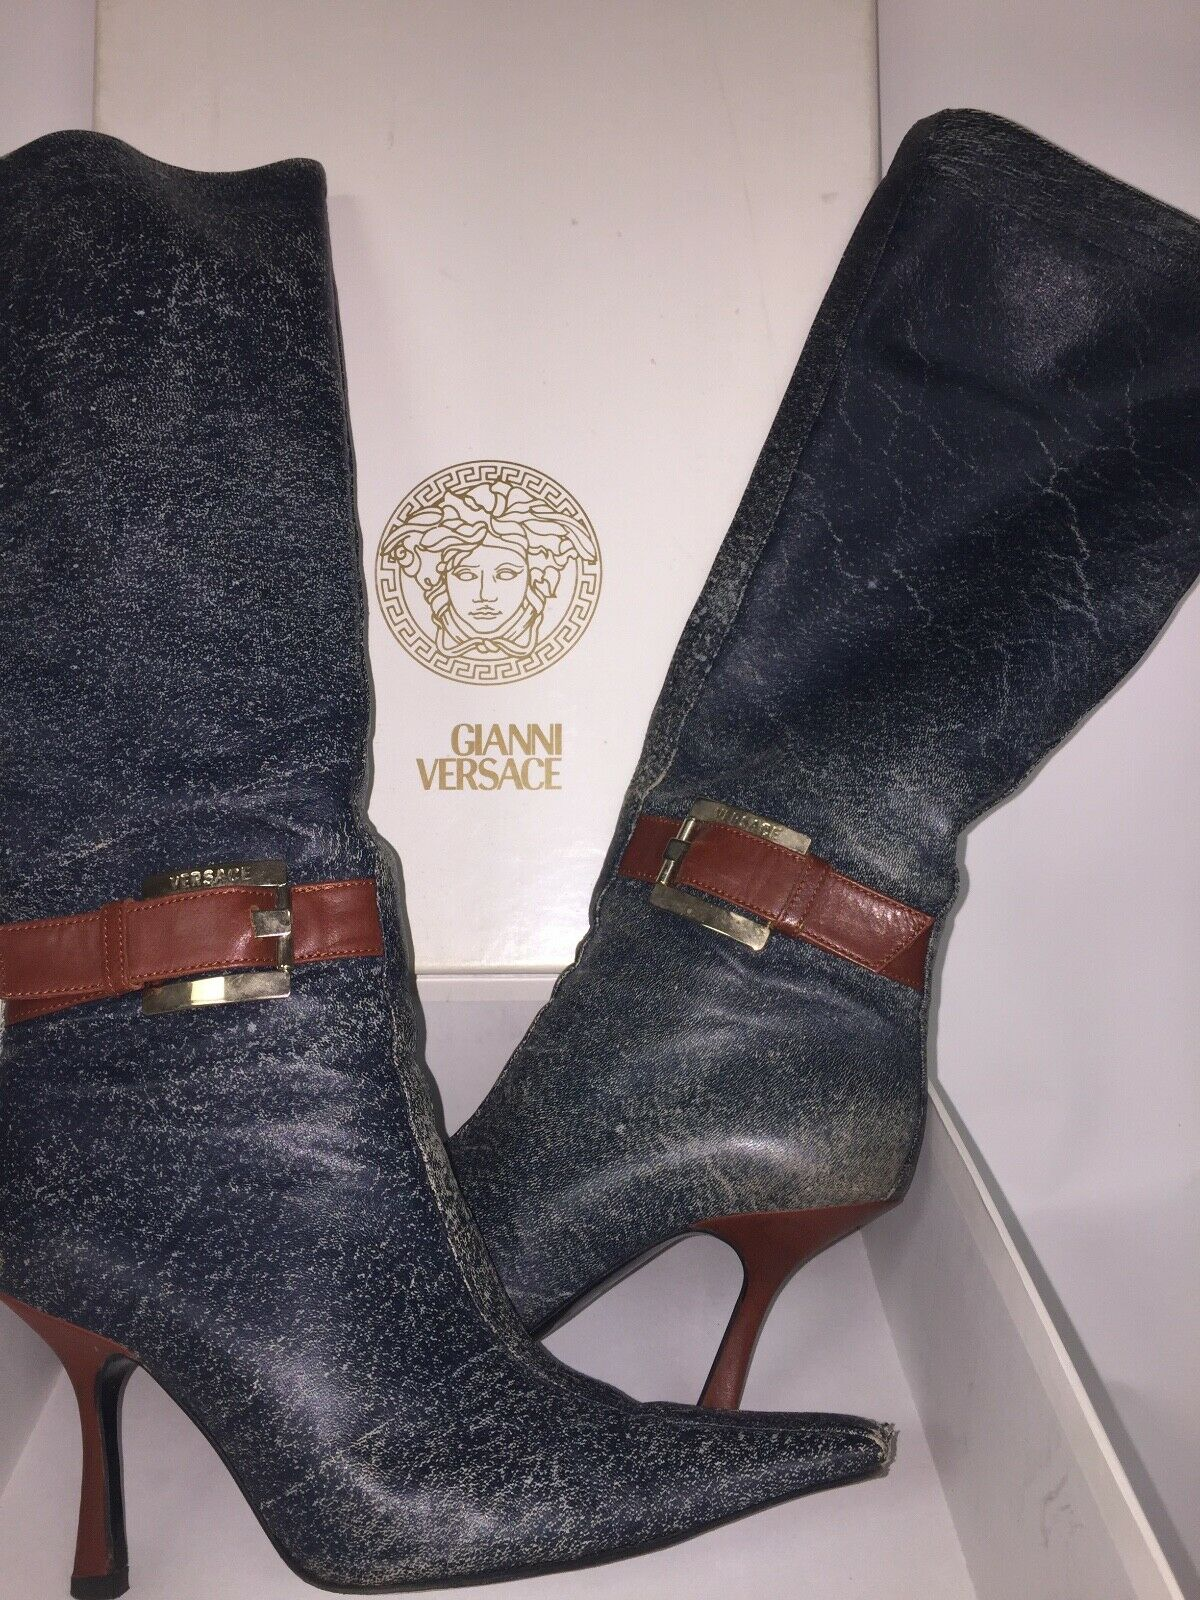 Gianni Versace leather denim color knee high boots size EU 38